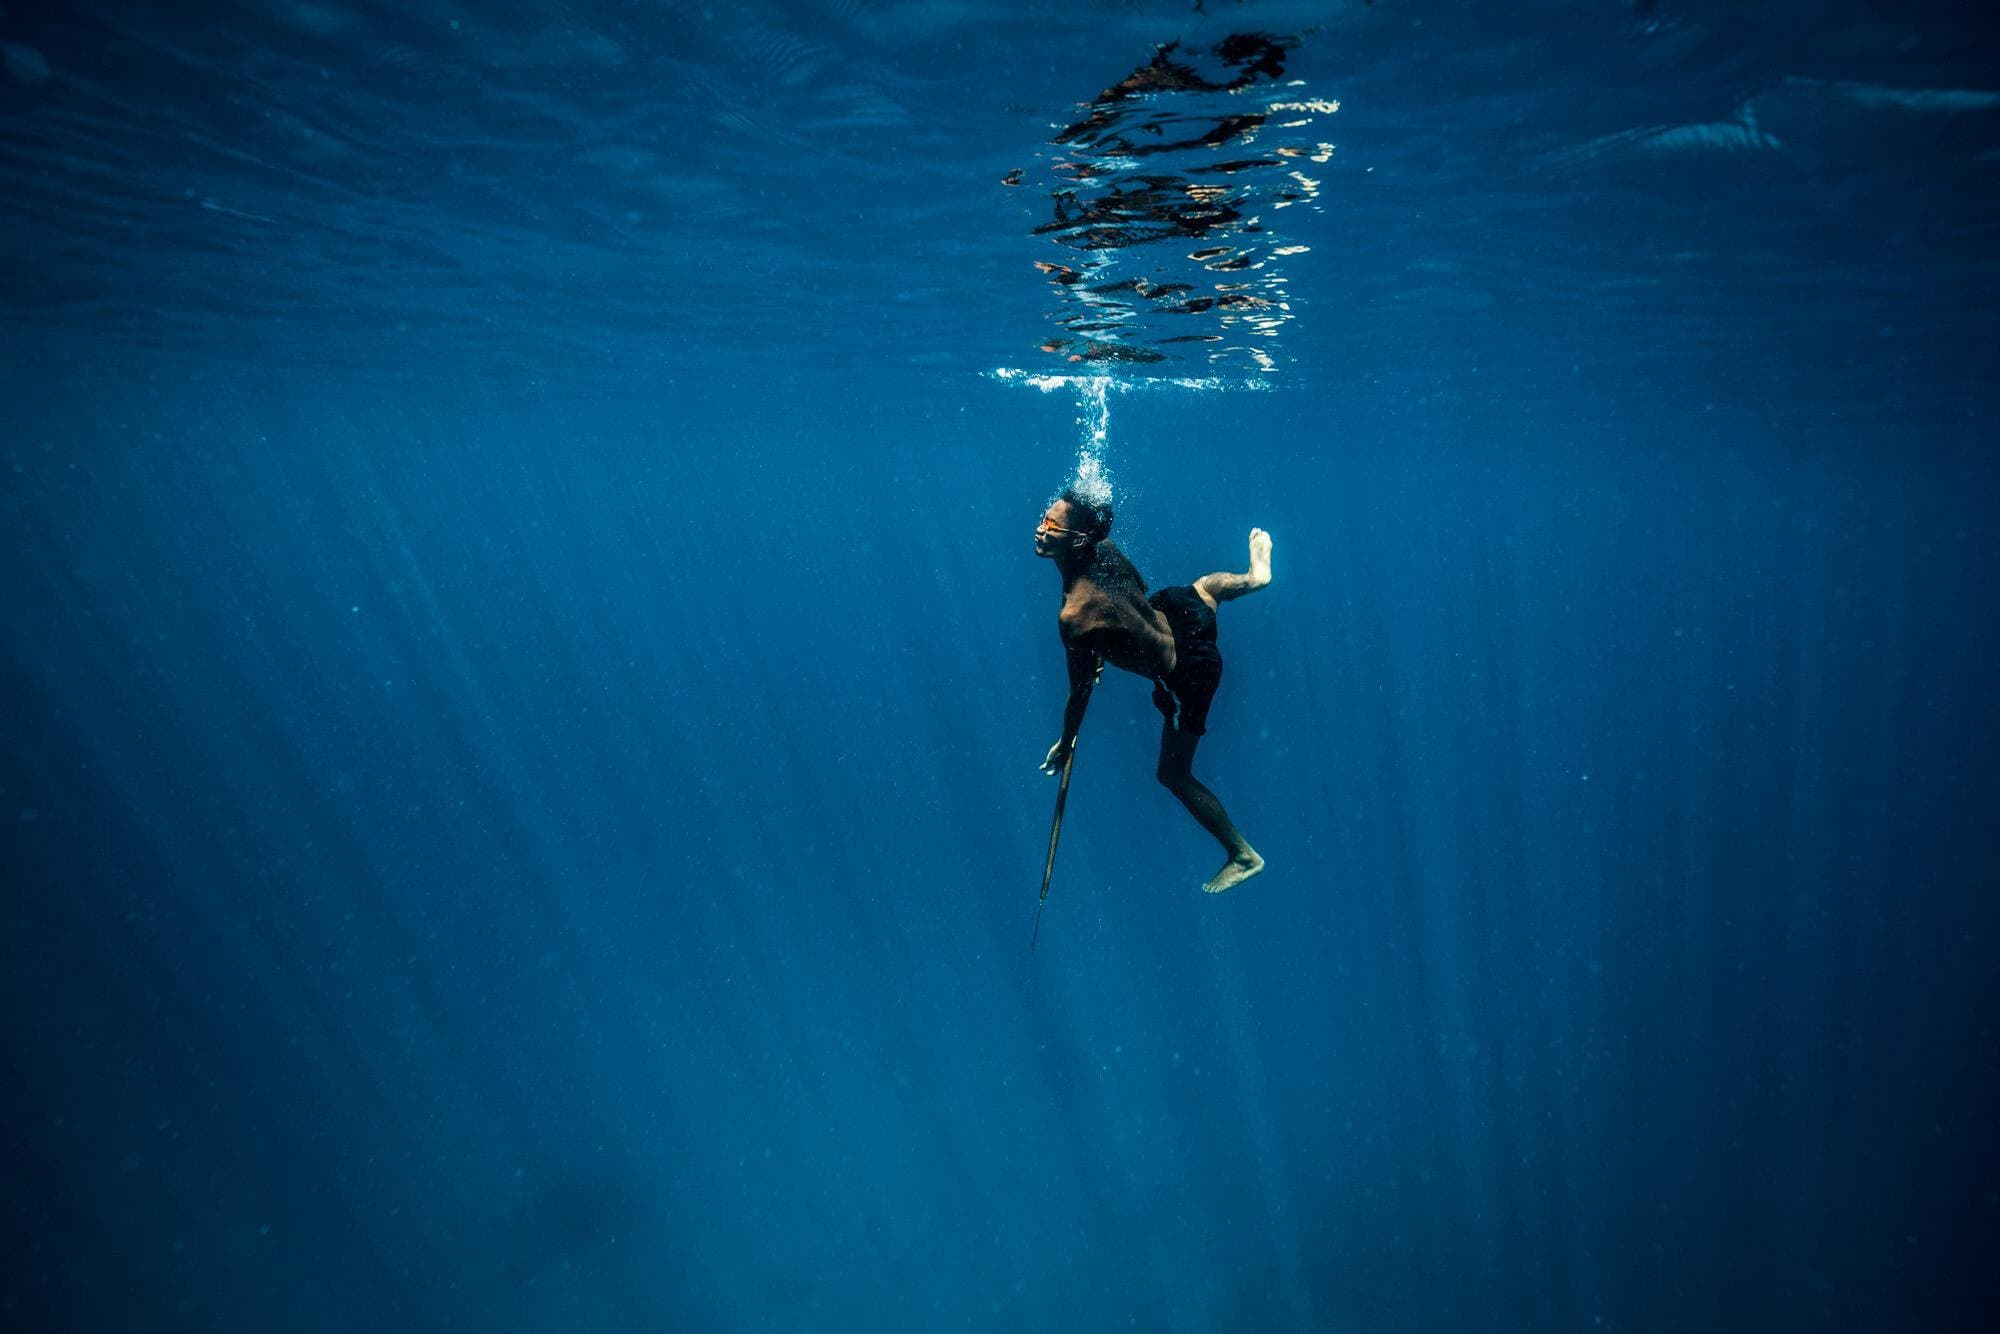 LOOK: French Free-diving Champion Shares Breathtaking